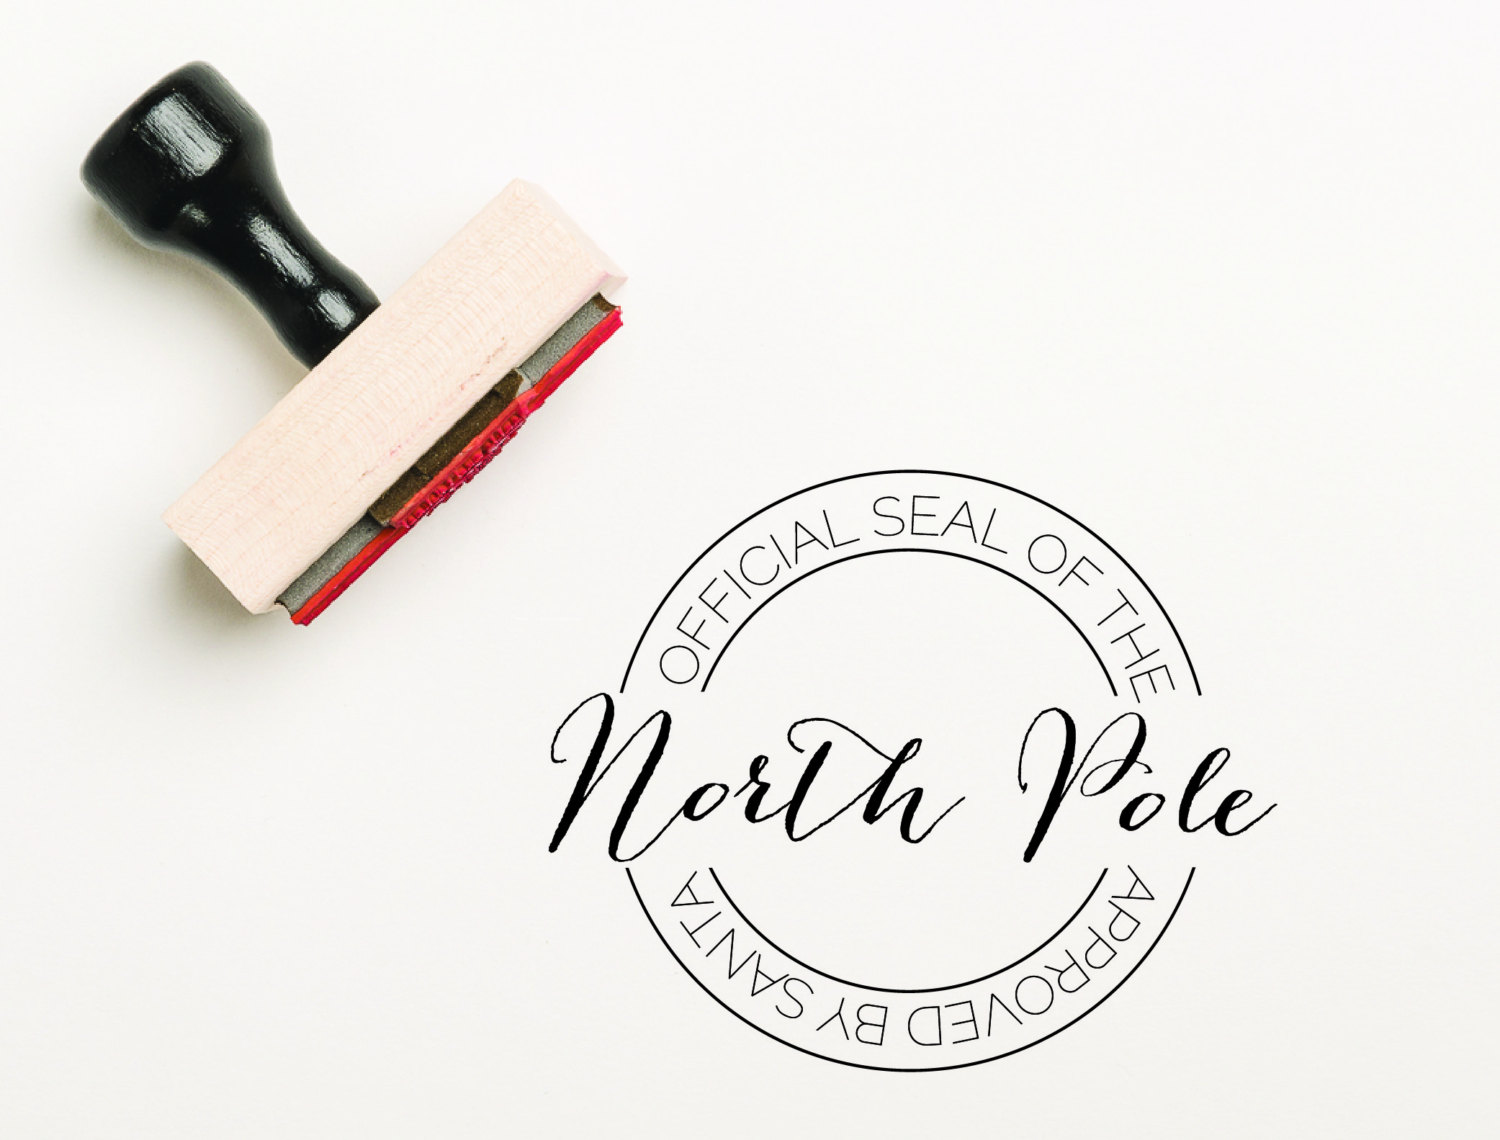 Official seal of the north pole stamp santa stamp christmas zoom spiritdancerdesigns Gallery